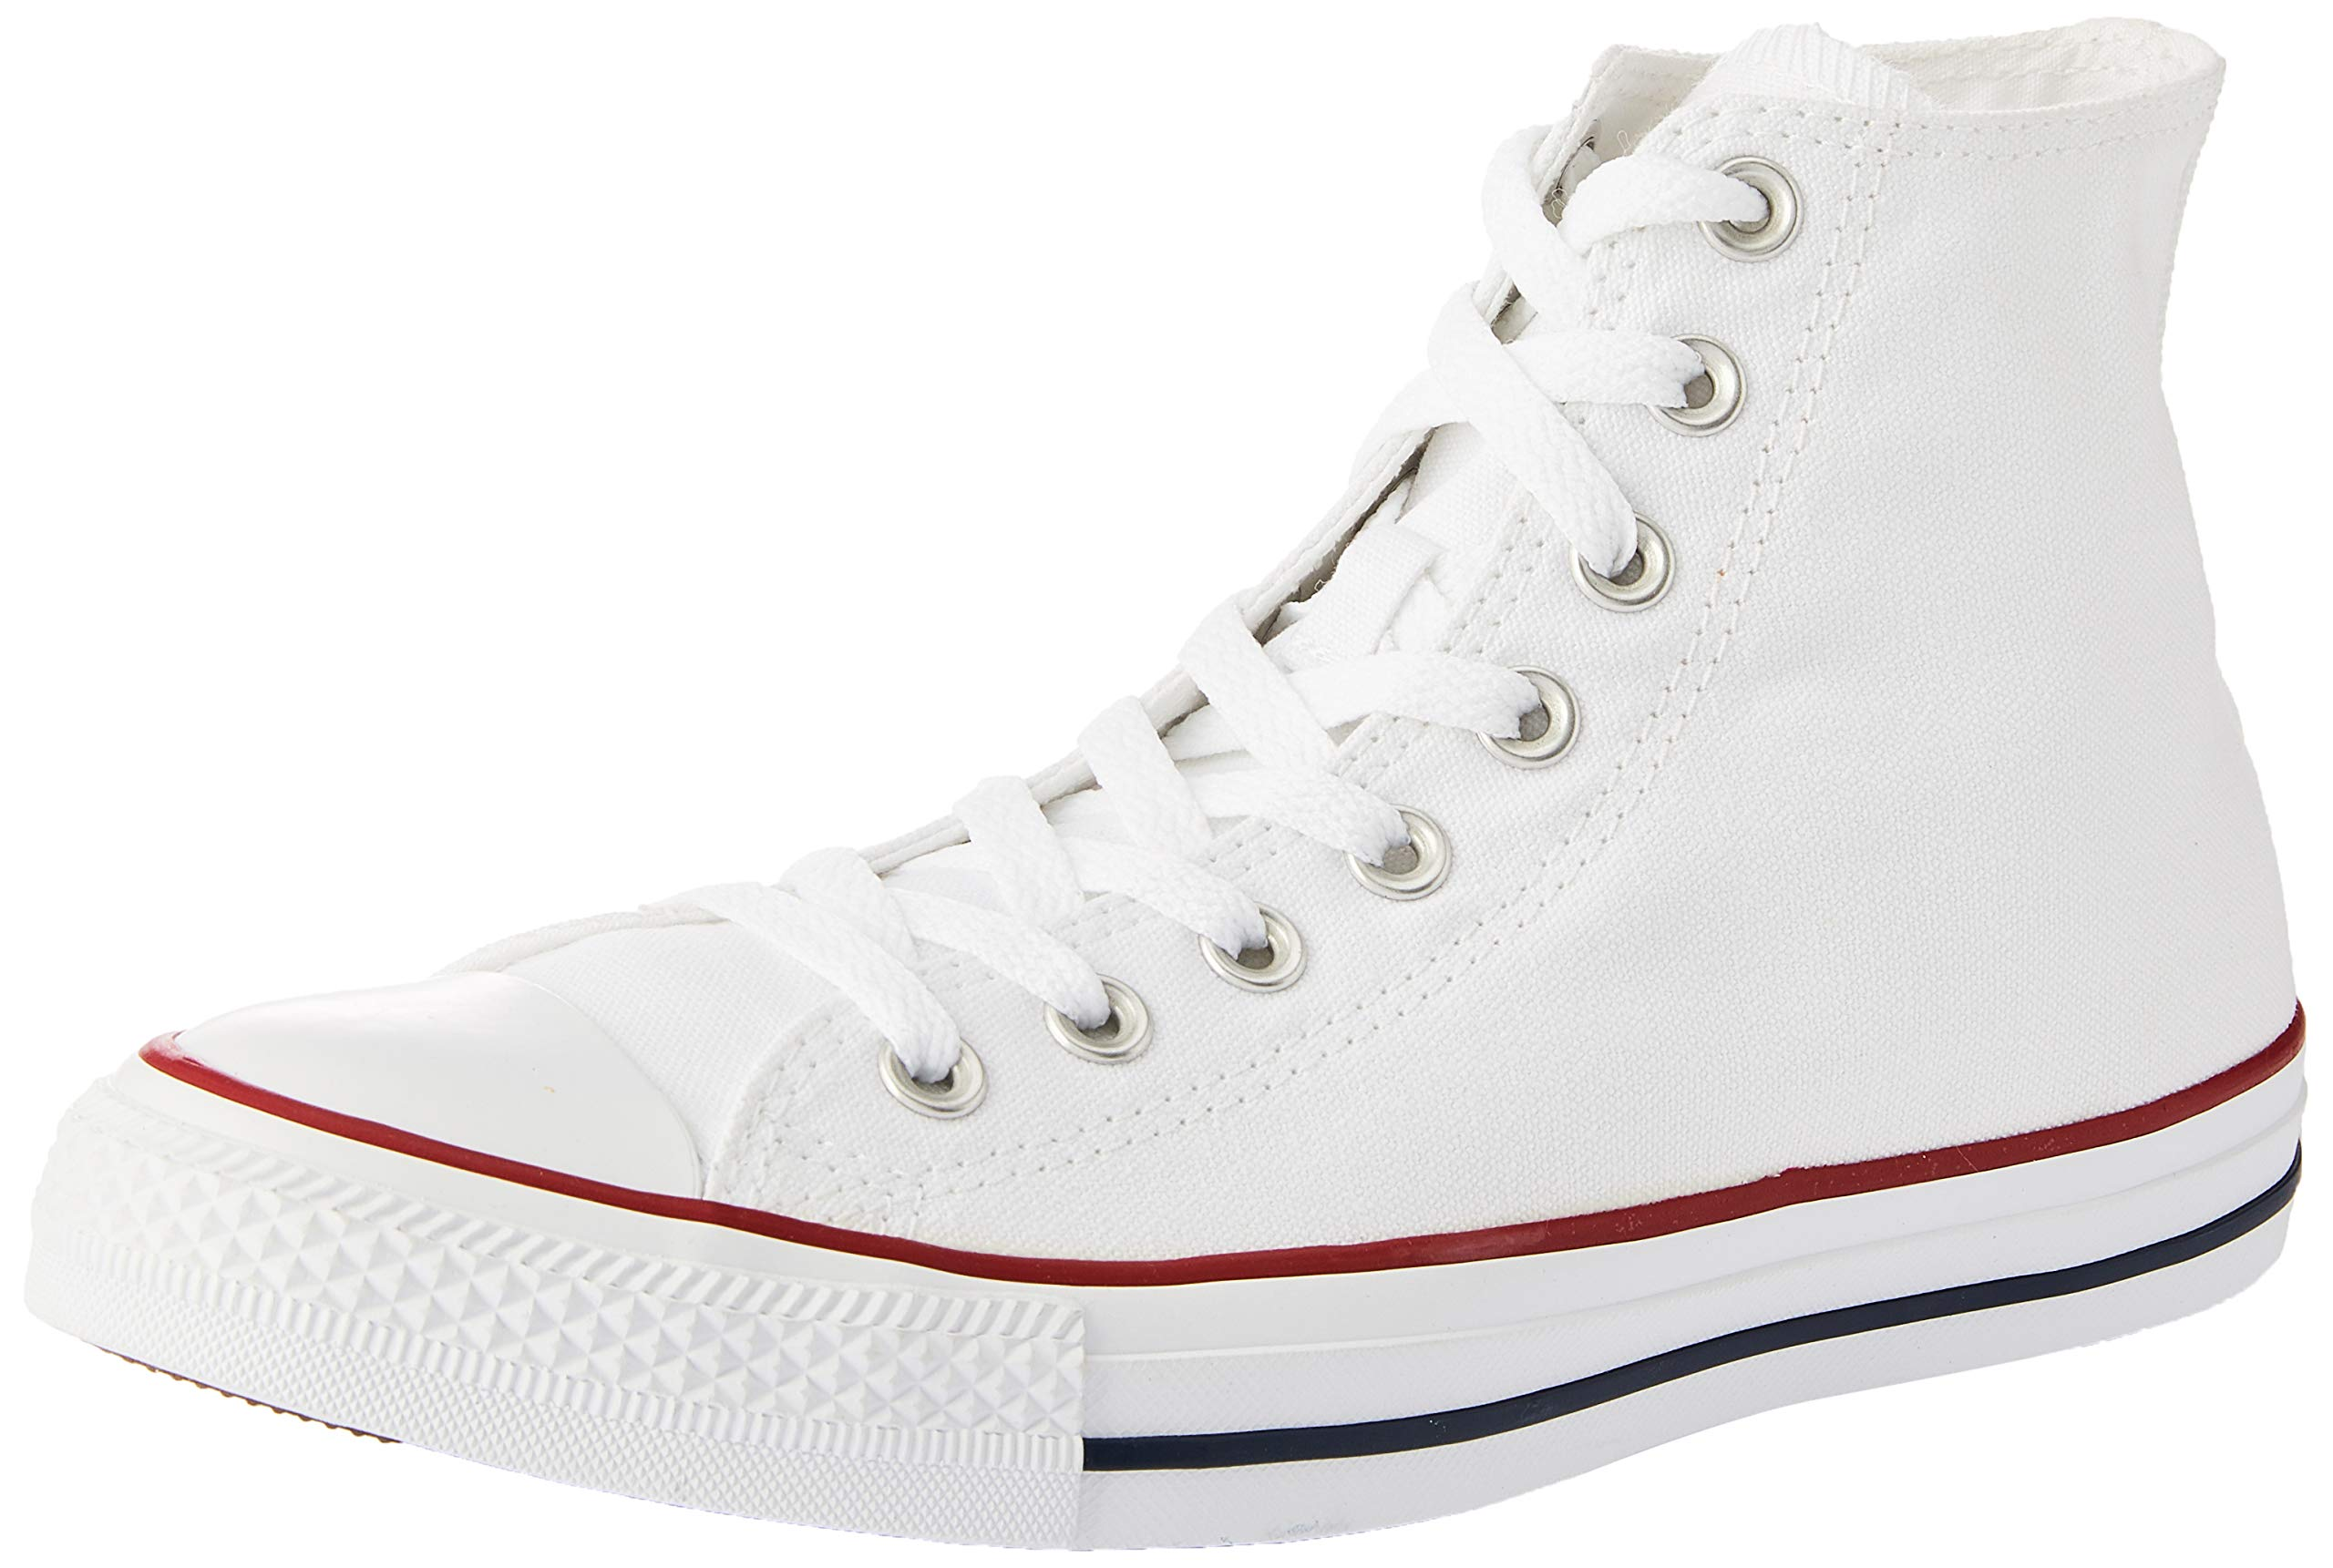 Mens Converse Chuck Taylor All Star High Top Sneakers (Optical White, 4.5 D(M) US) by Converse